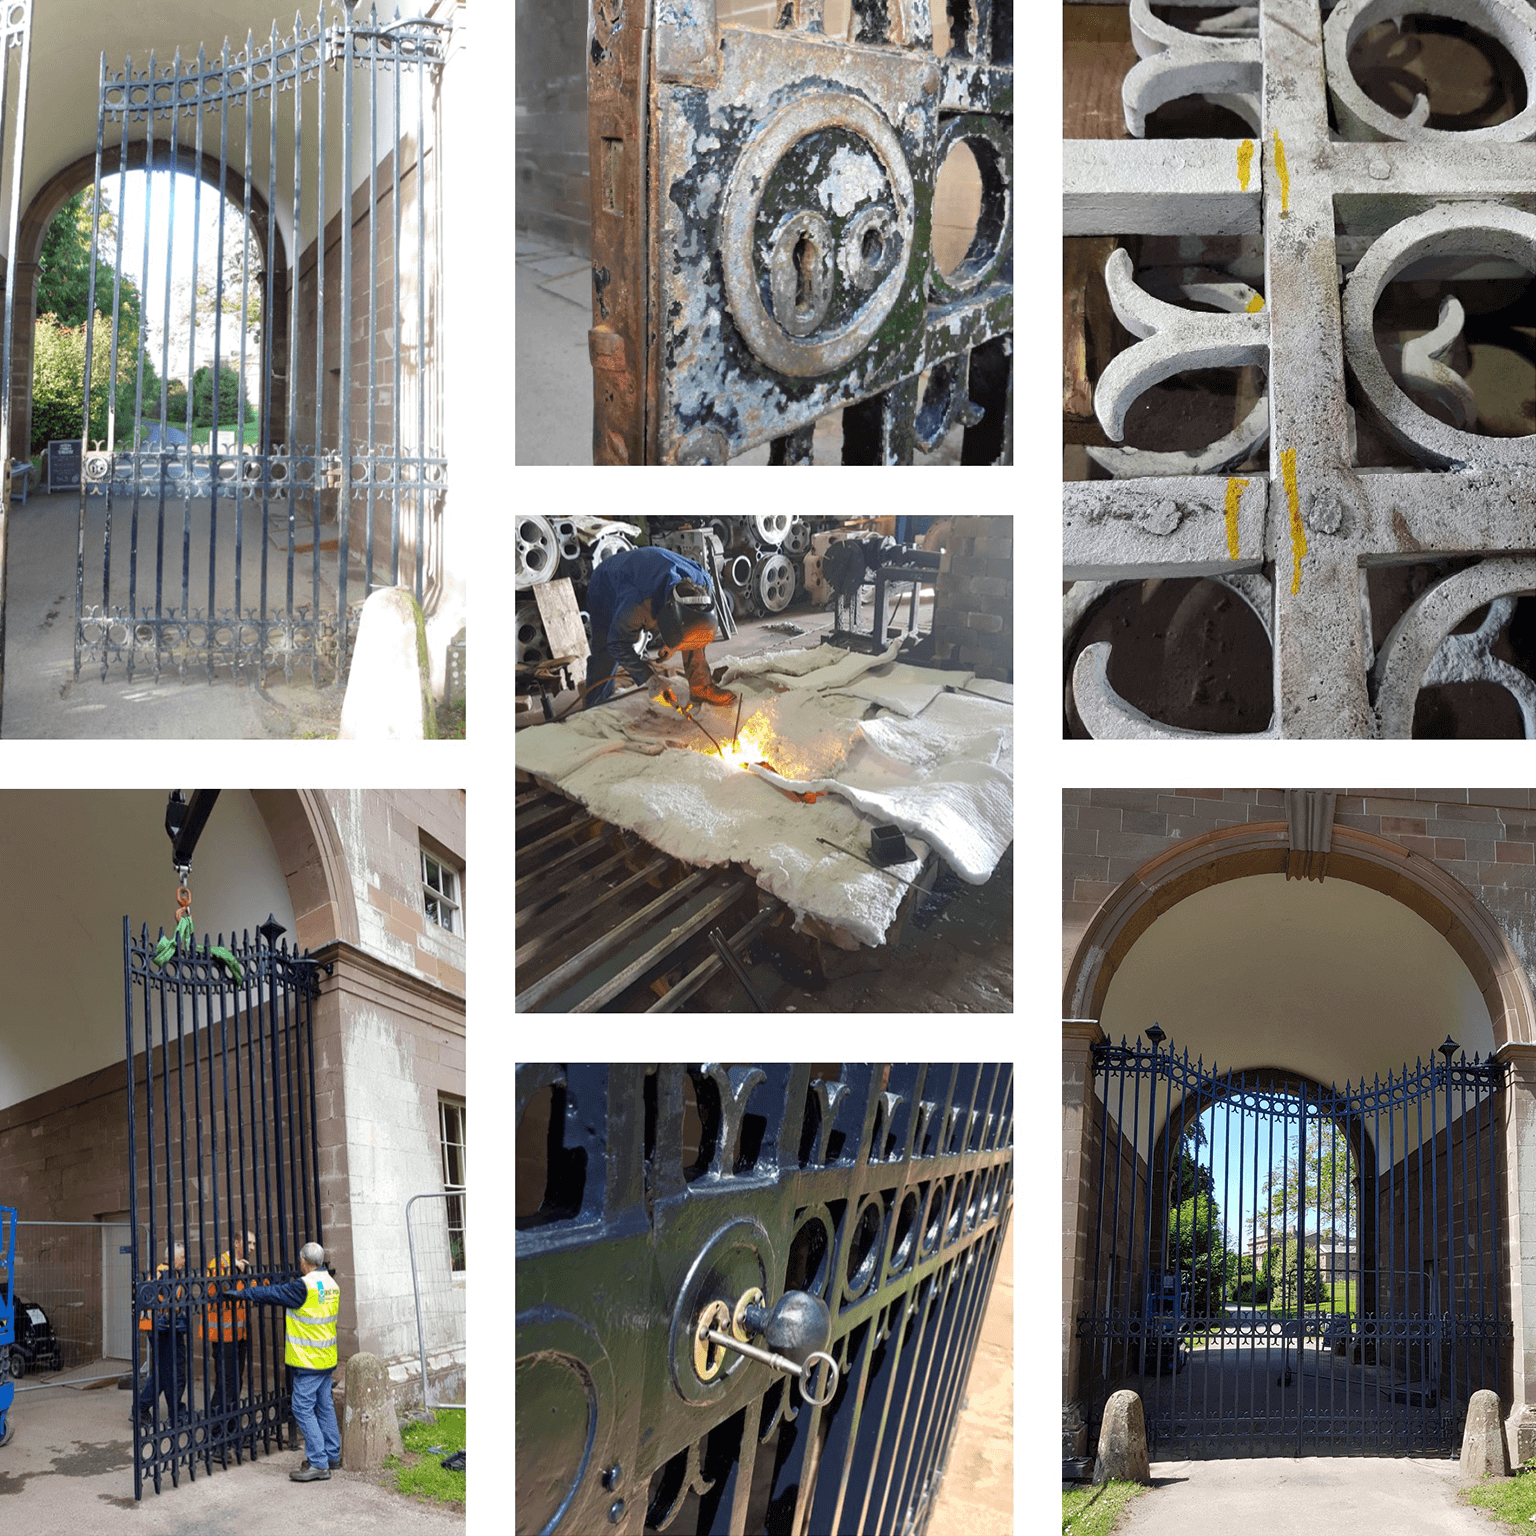 Wrought Cast Iron Gate Repairs on Stately Home